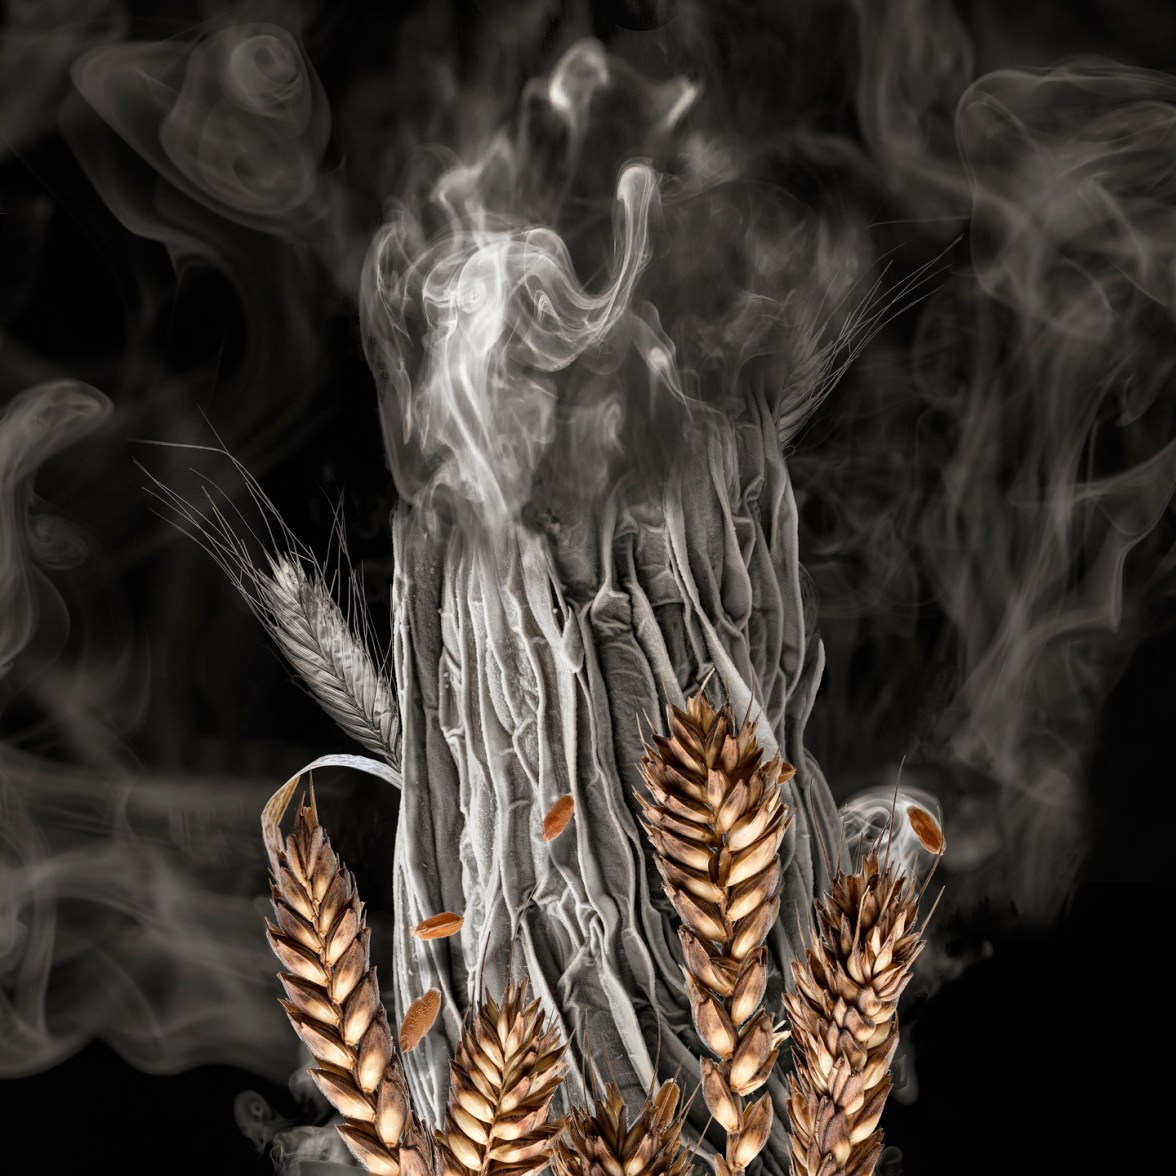 Wheat Sprout on Fire © Robert Dash